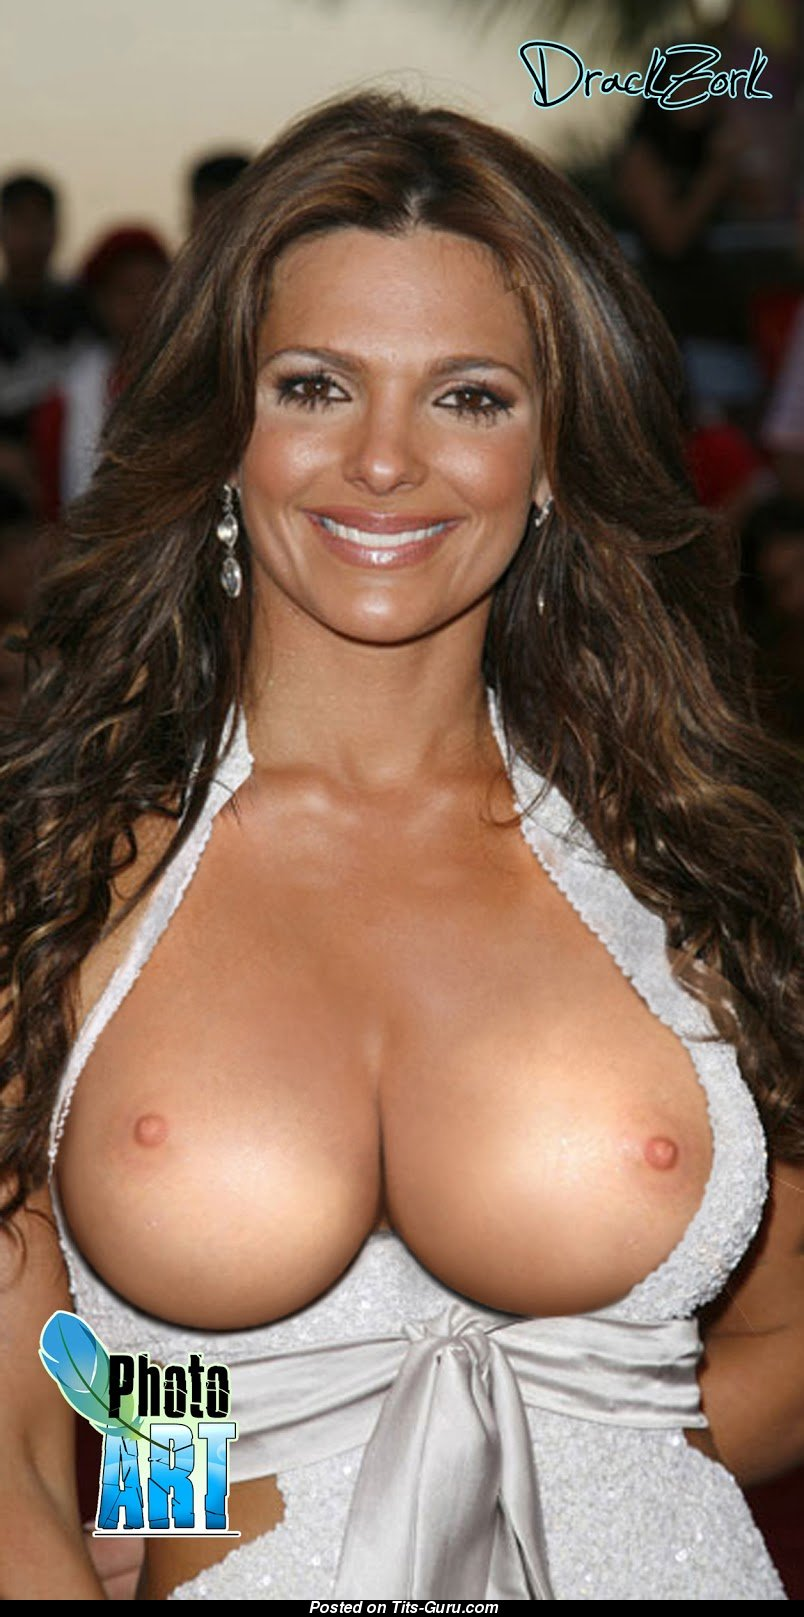 barbara bermudo porn photos